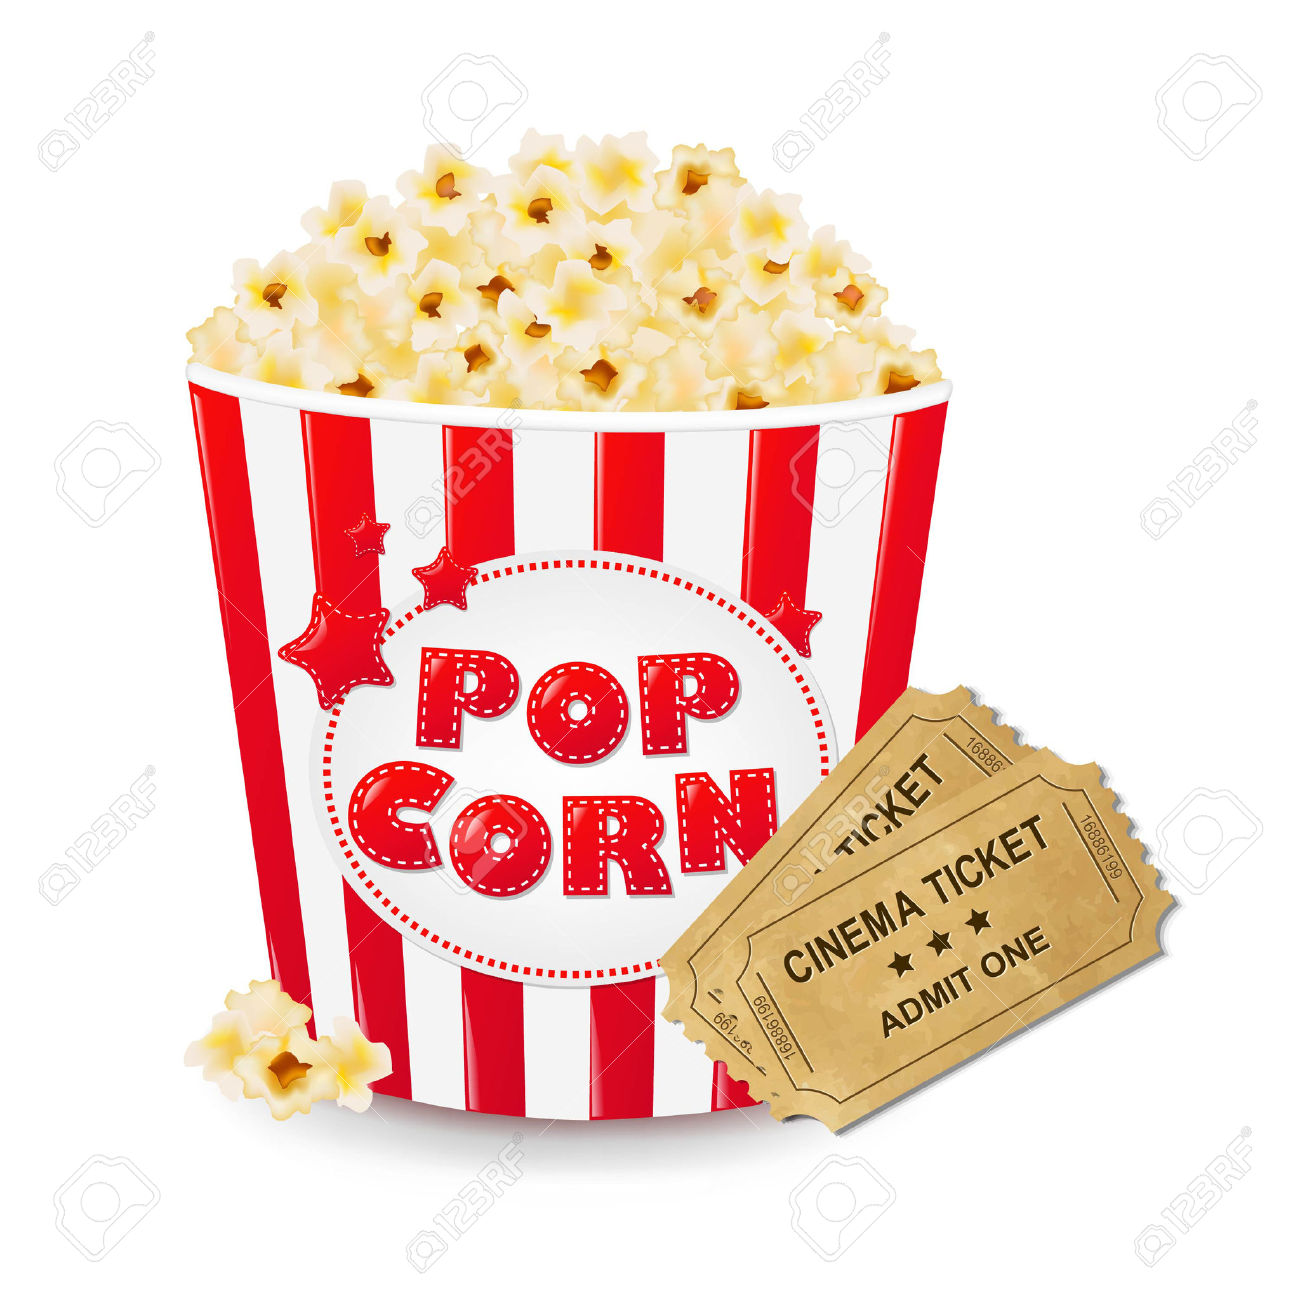 Popcorn In Cardboard Box With Ticket Cinema With Gradient Mesh.